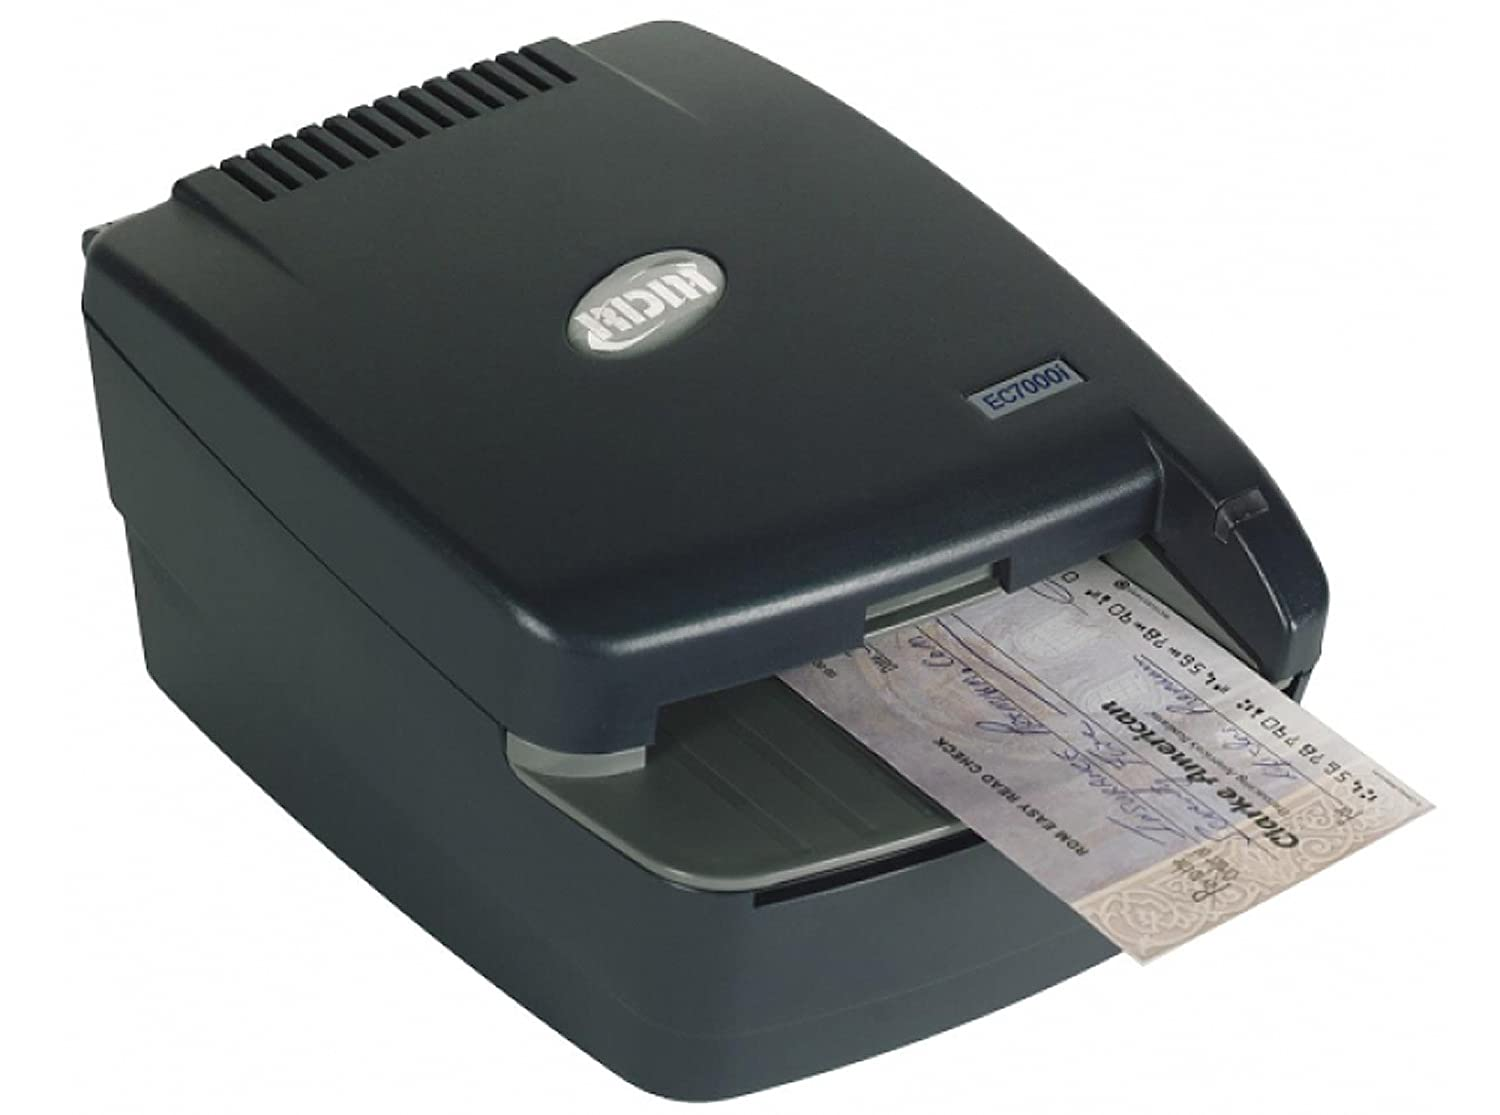 amazon com unisys by rdm corp uec 7011 f check scanner uec7000